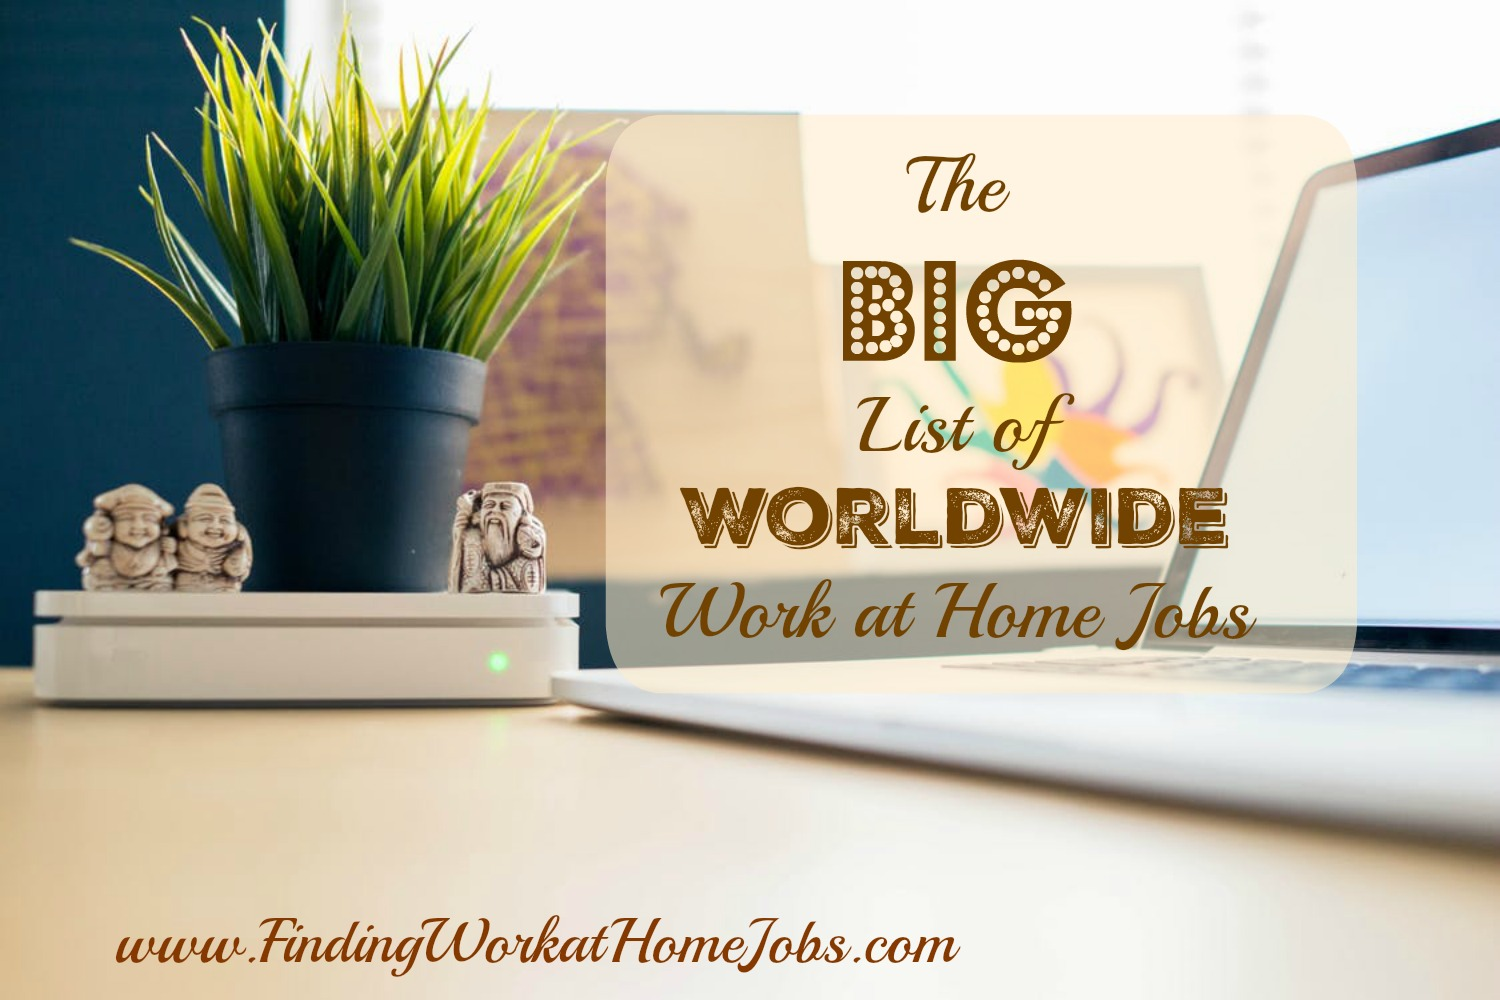 100 Web Design Jobs From Home Work From Home Jobs With Salaries Of 100 000 Or More Dwym